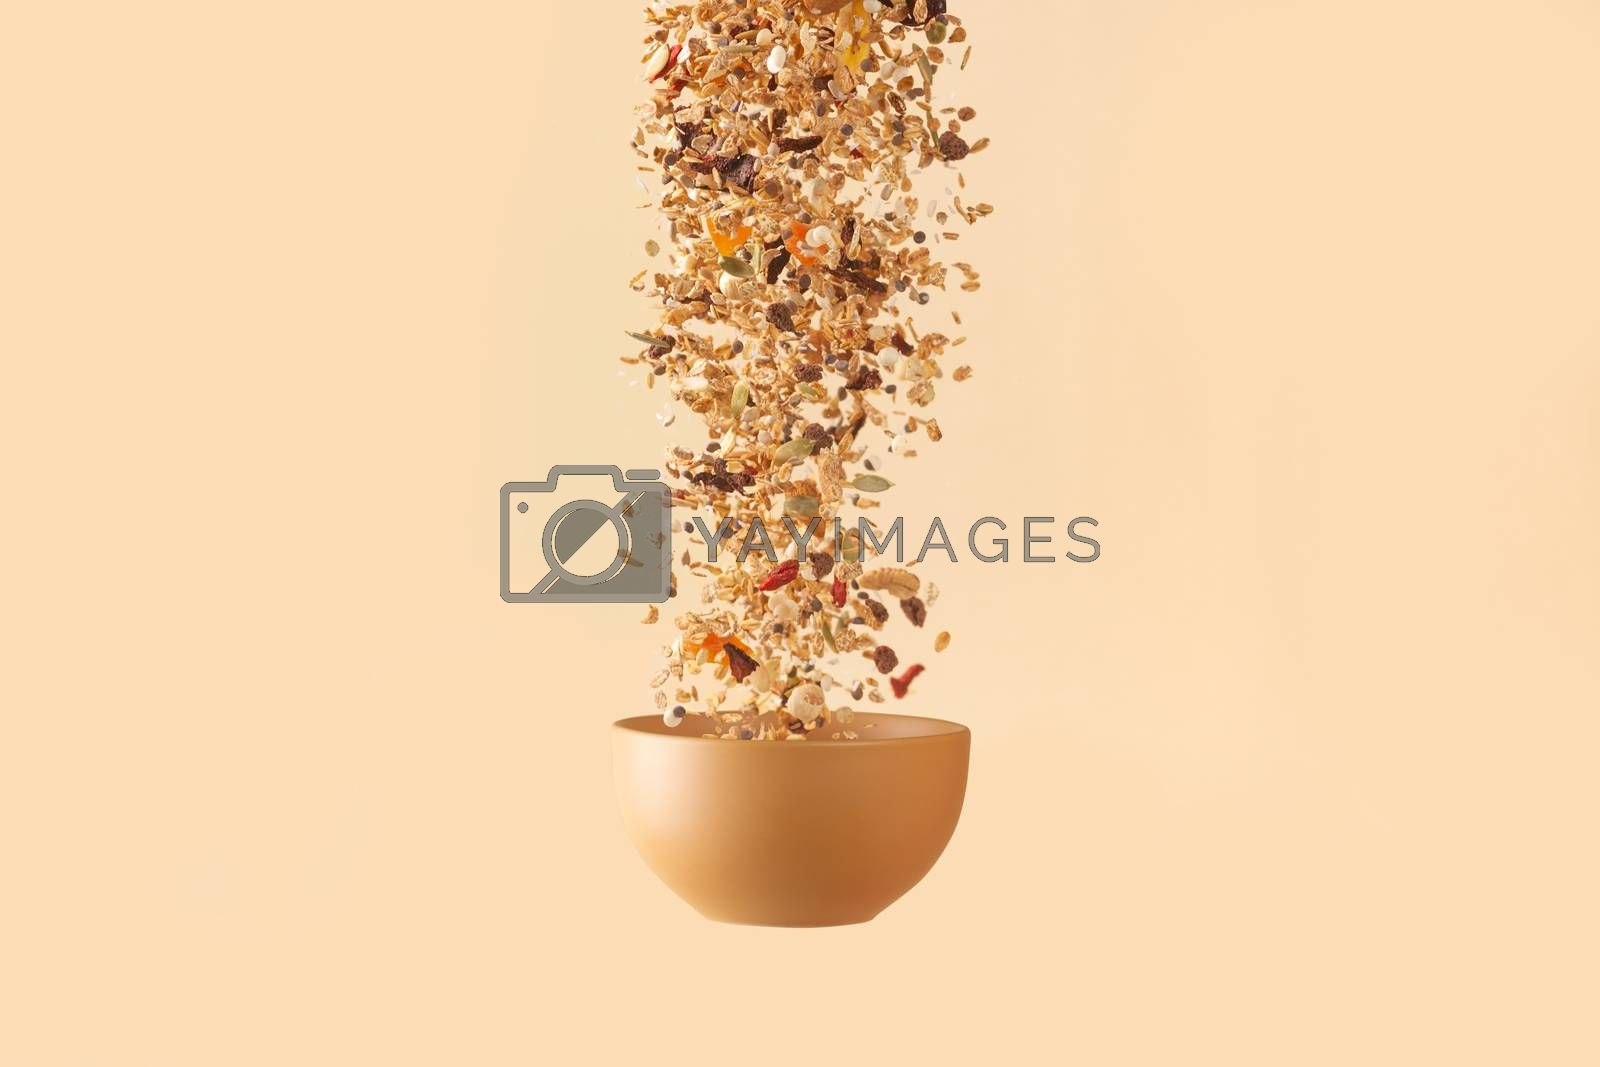 Falling granola with candied fruits and nuts  to baige flying bowl on baige background. Stock photo of nutritient food. Conceptual photo of vegan and vegetarian healthy food.